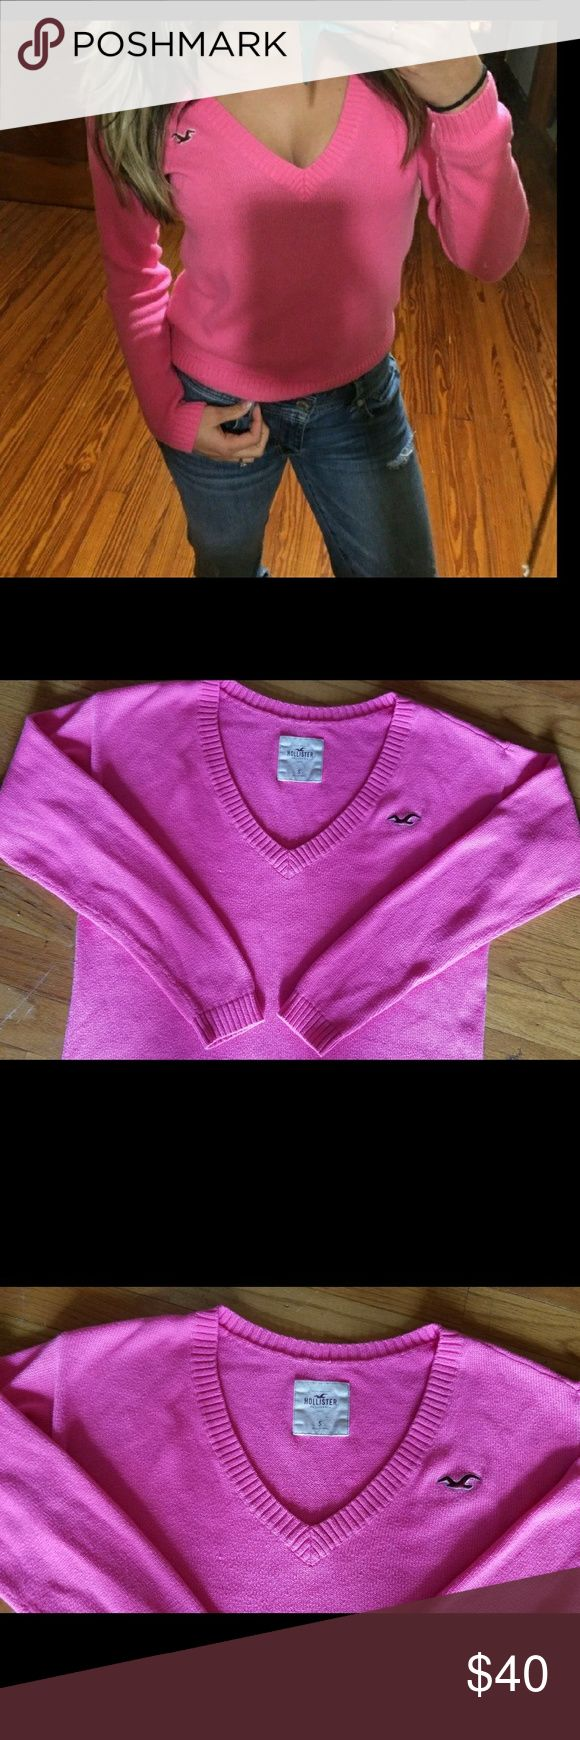 Hollister v-neck light sweater/sz.S Can go less through Pay??al or Merc ----  Gorgeous Hollister v-neck sweater in a beautiful pink color!! in like new condition!! size small. ....It's a very light sweater not heavy at all! Perfect for spring:))  Also Victoria Secret freebies with any purchases from my closet! All brand new???? Hollister Sweaters V-Necks